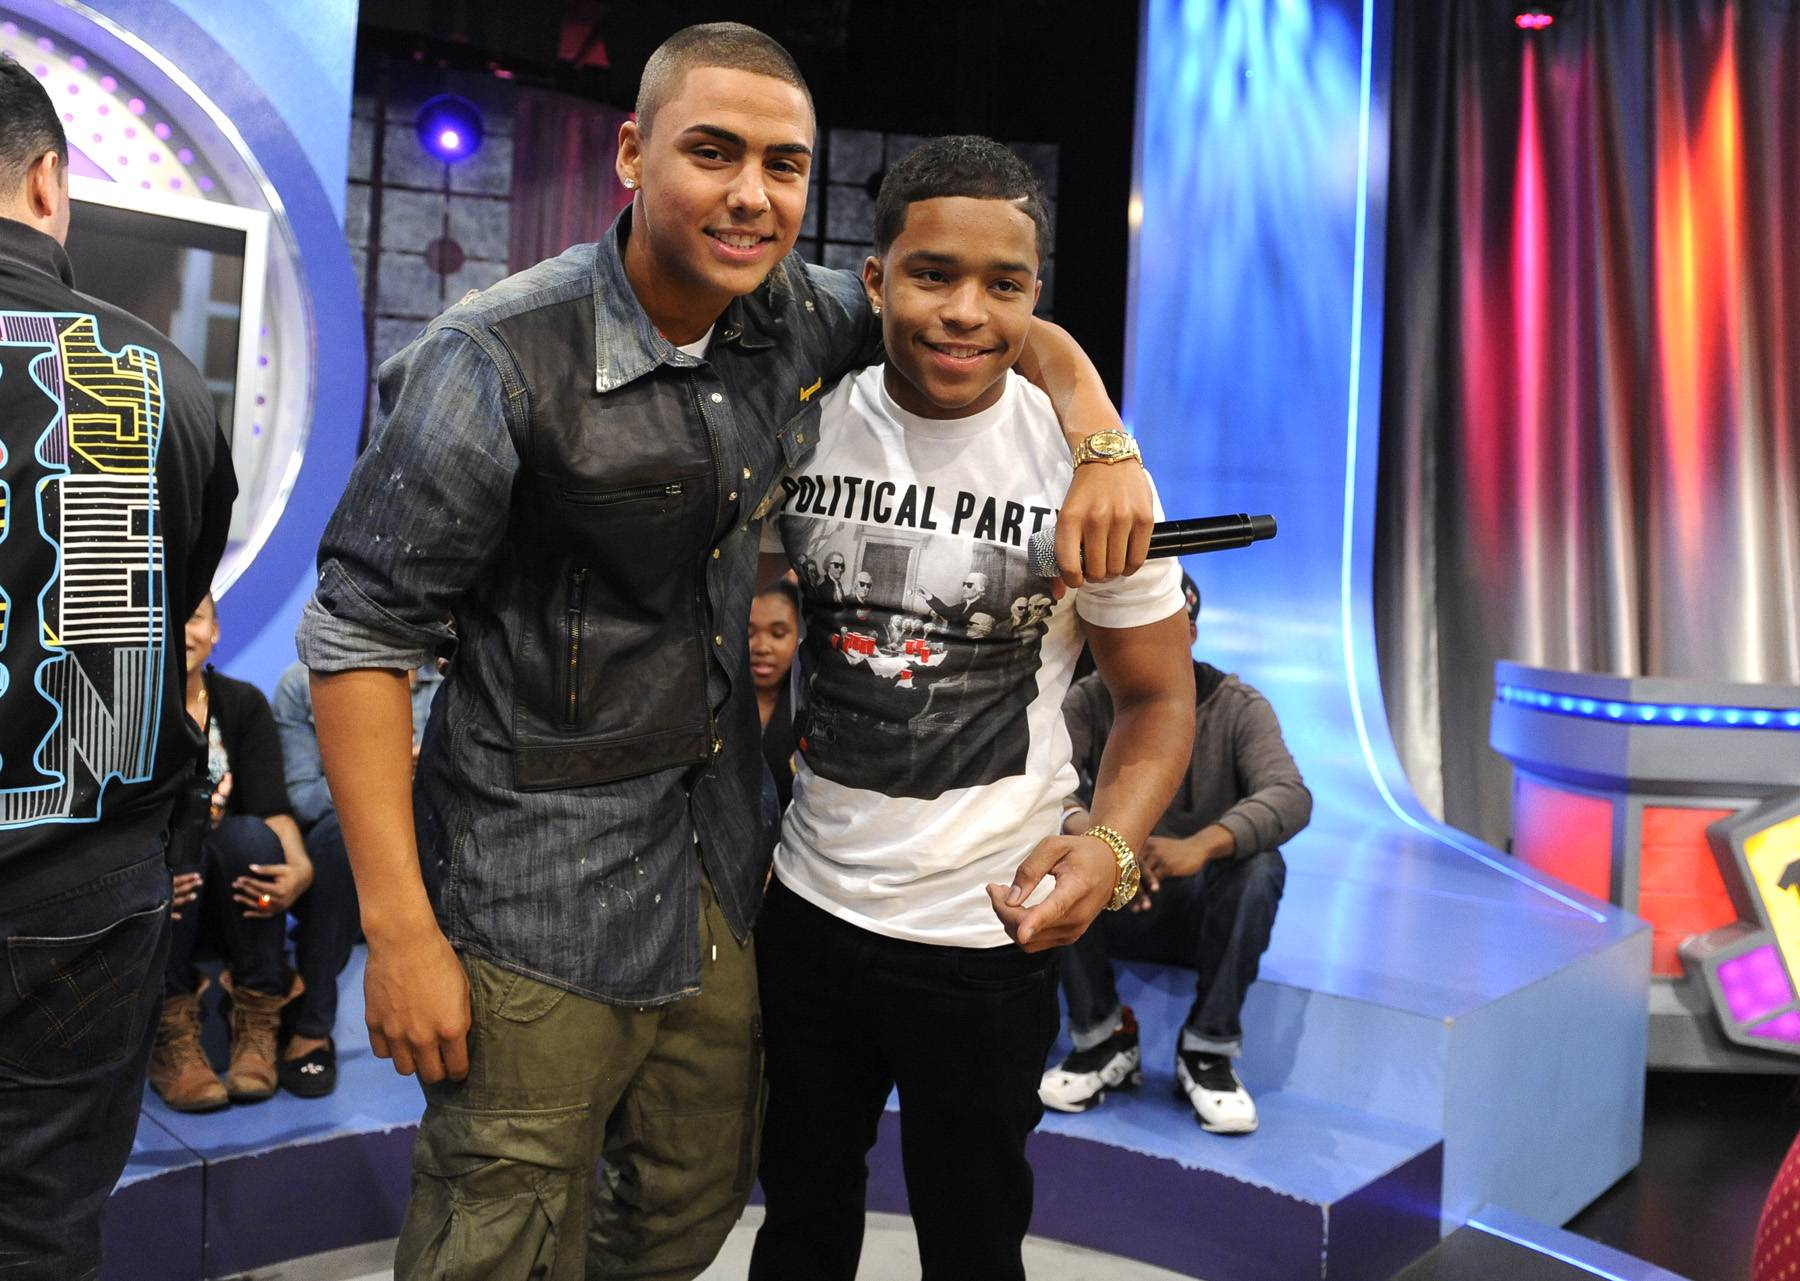 Brothers - Quincy and Justin on set at 106 & Park, May 3, 2012. (Photo: John Ricard / BET)